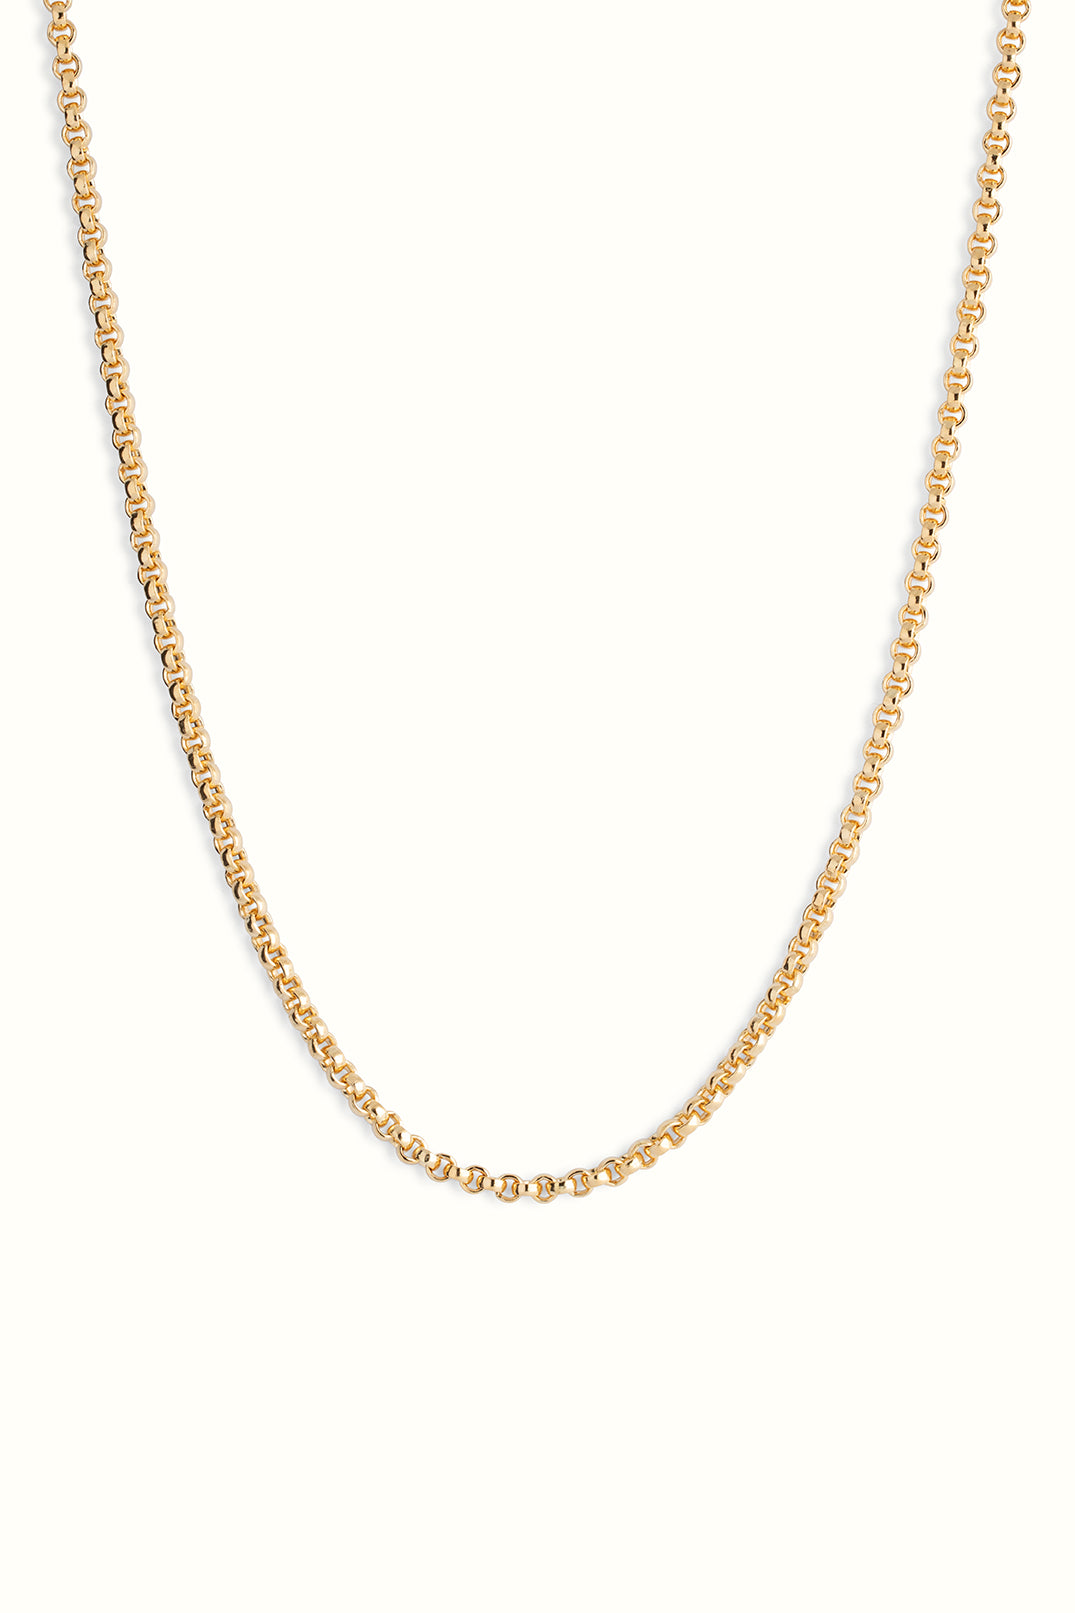 a product picture close up of a chunky gold filled rolo chain necklace on a white background